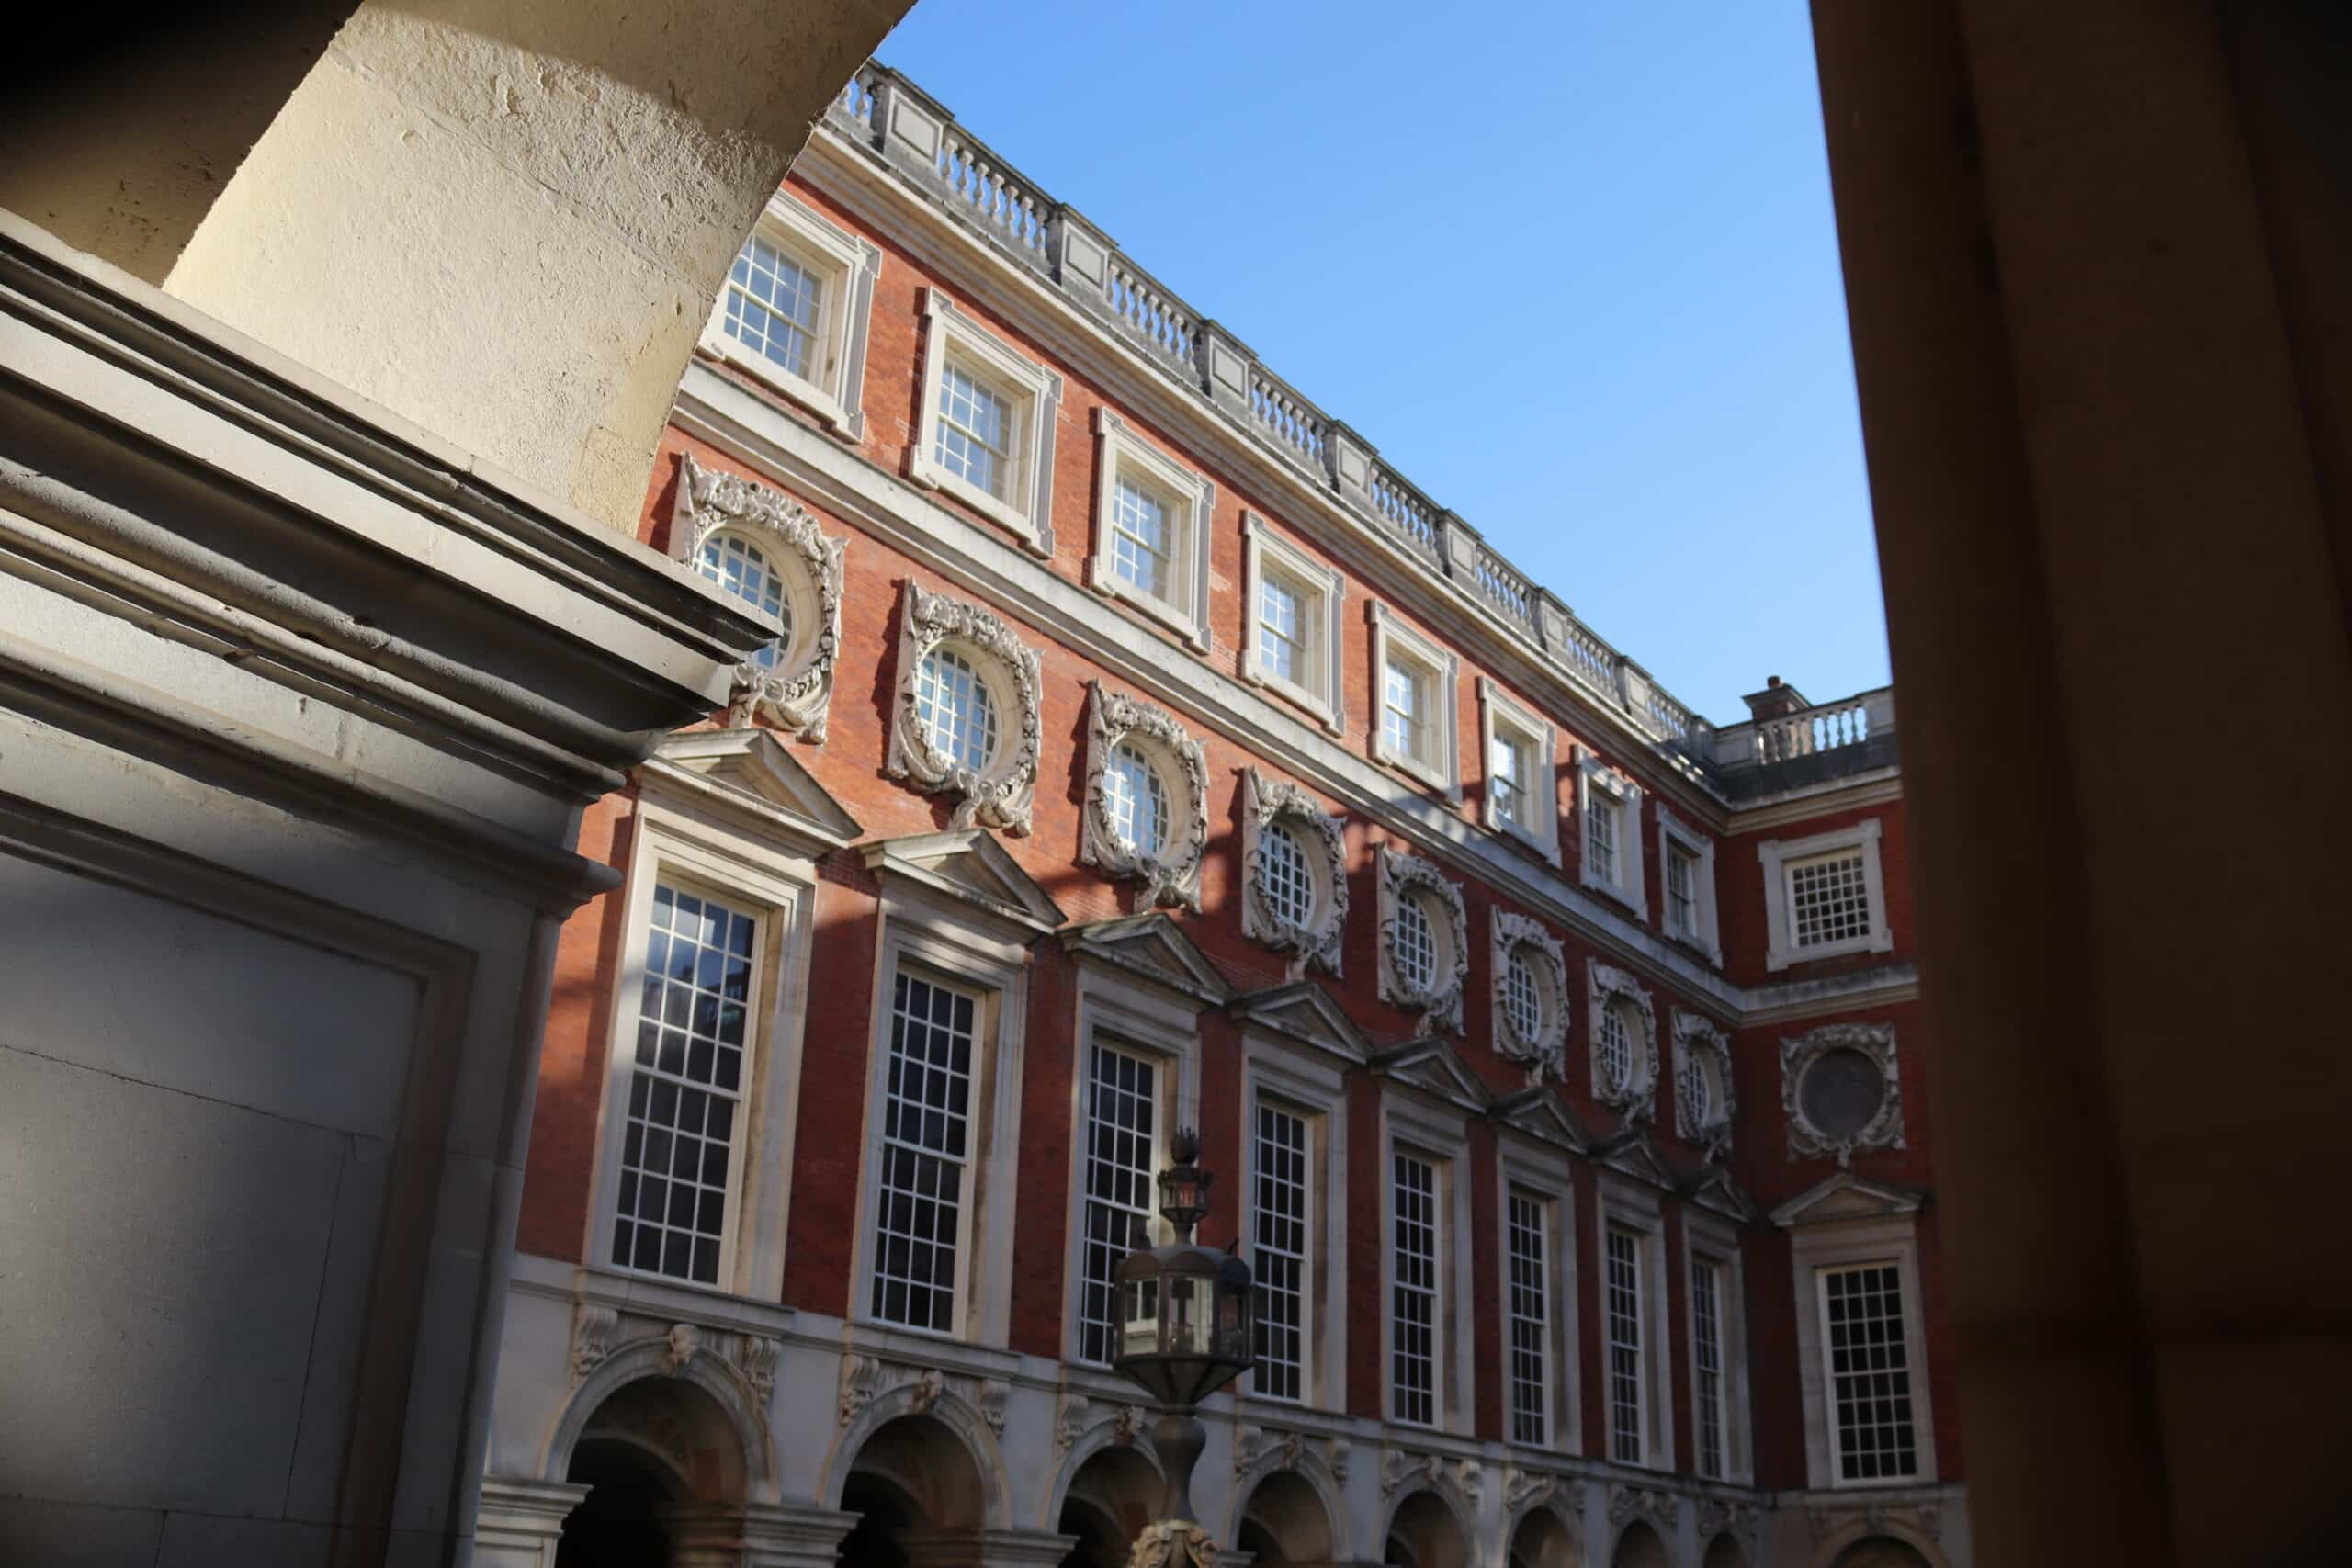 The Fountain Court at Hampton Court Palace, Designed by Sir Christopher Wren.